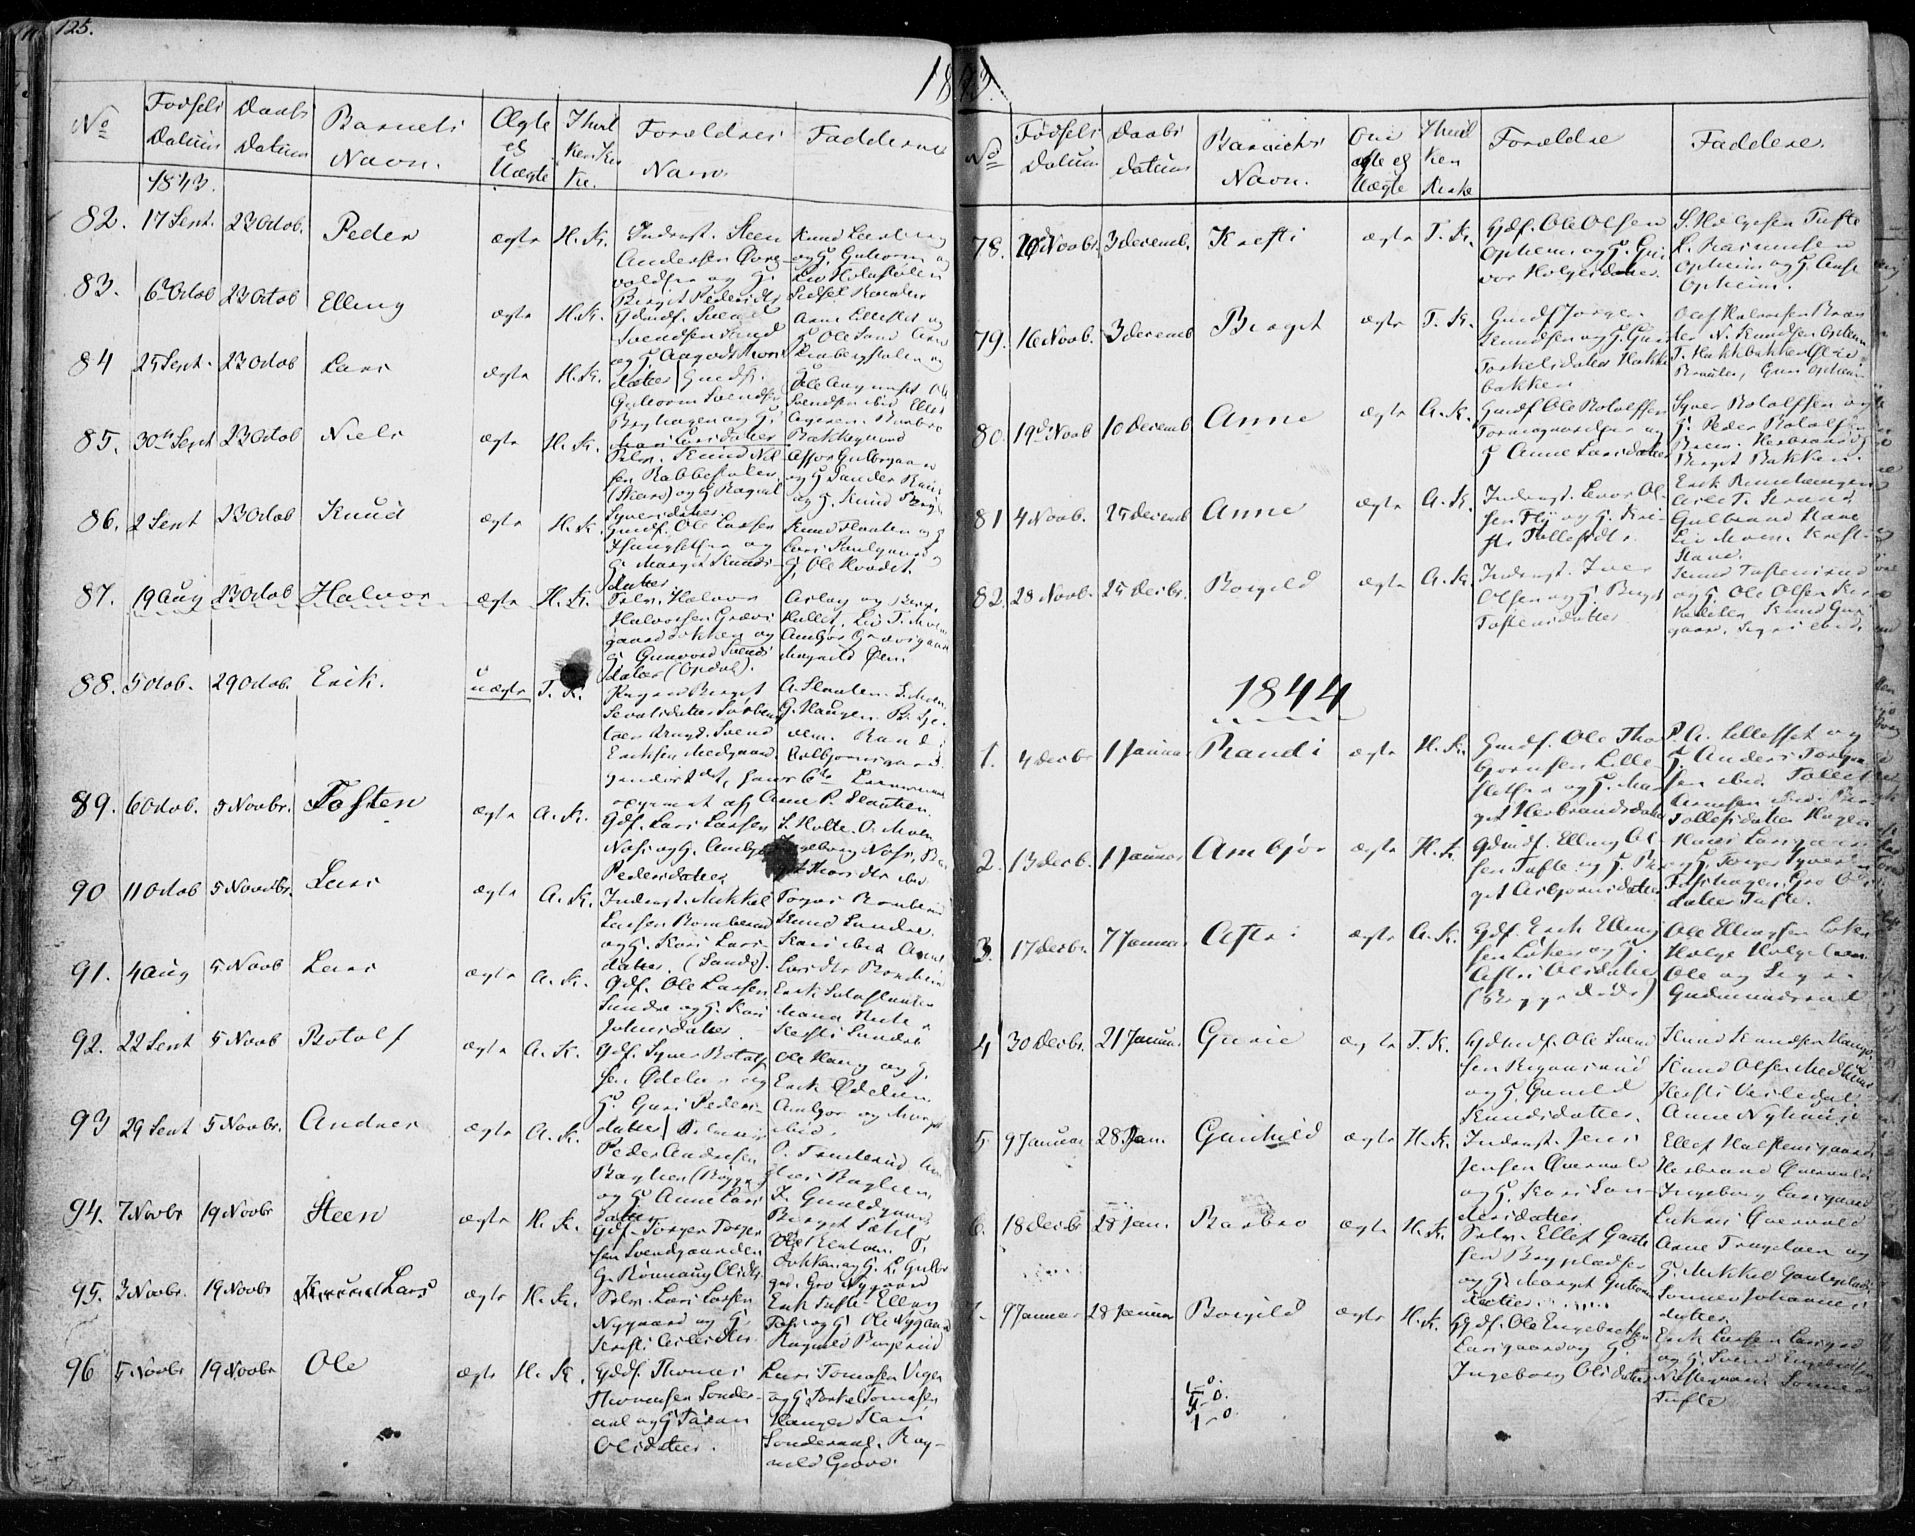 SAKO, Ål kirkebøker, F/Fa/L0005: Parish register (official) no. I 5, 1825-1848, p. 125